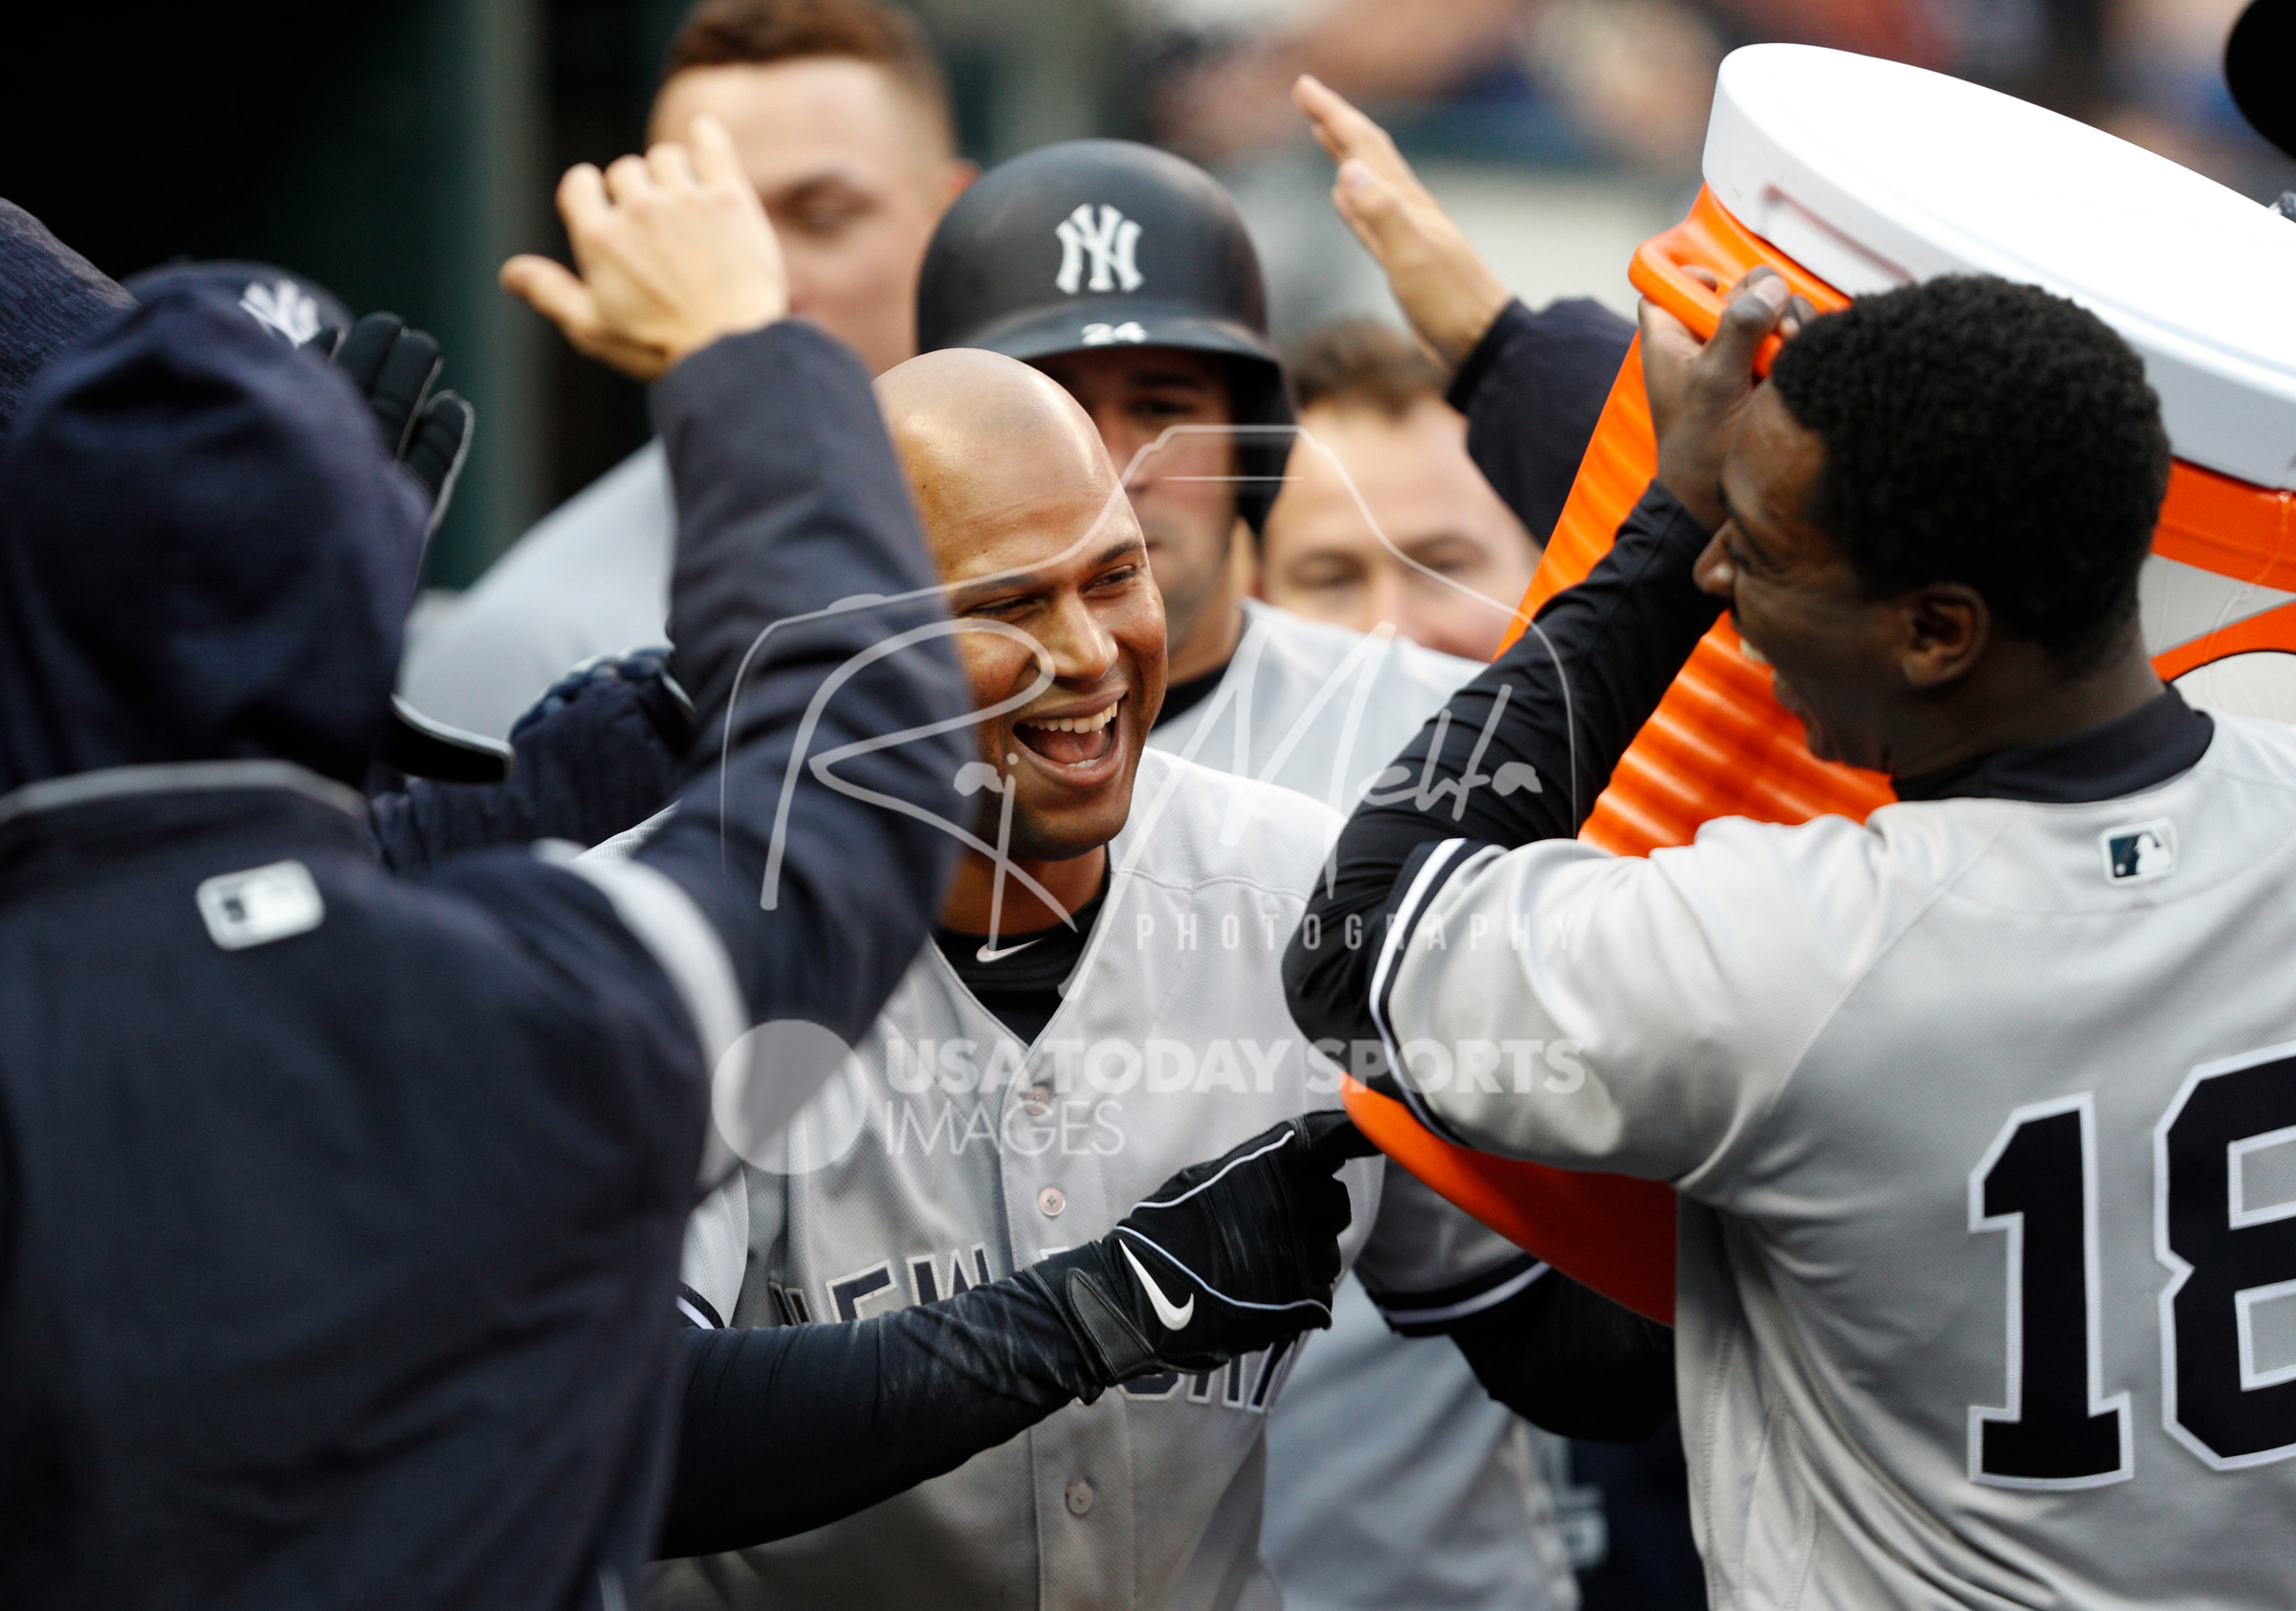 Apr 13, 2018; Detroit, MI, USA; New York Yankees center fielder Aaron Hicks (31) celebrates with teammates after hitting an inside the park home run that scores two during the second inning against the Detroit Tigers at Comerica Park. Mandatory Credit: Raj Mehta-USA TODAY Sports